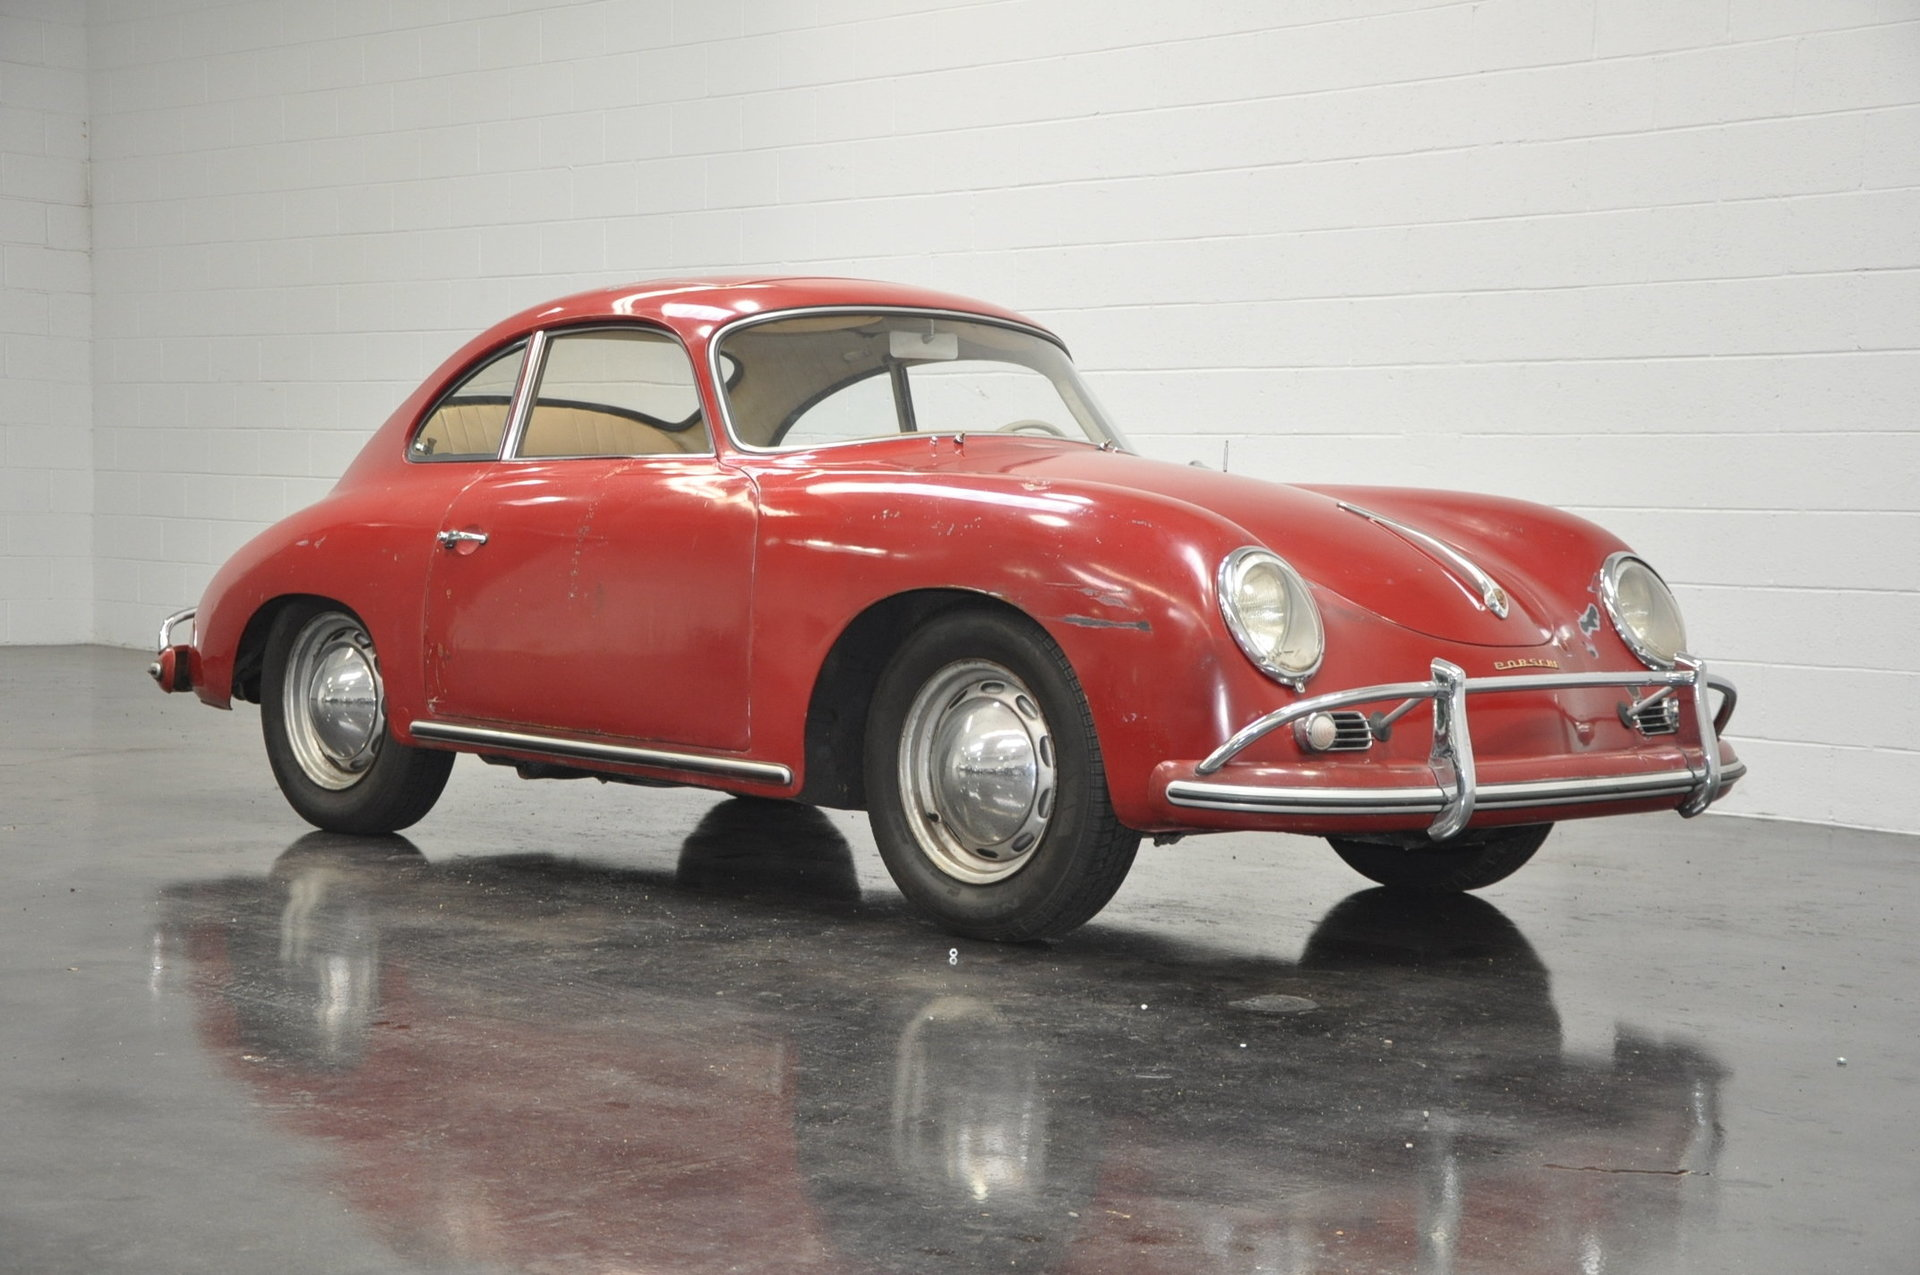 1959 Porsche 356a Sunroof Coupe For Sale 80138 Mcg